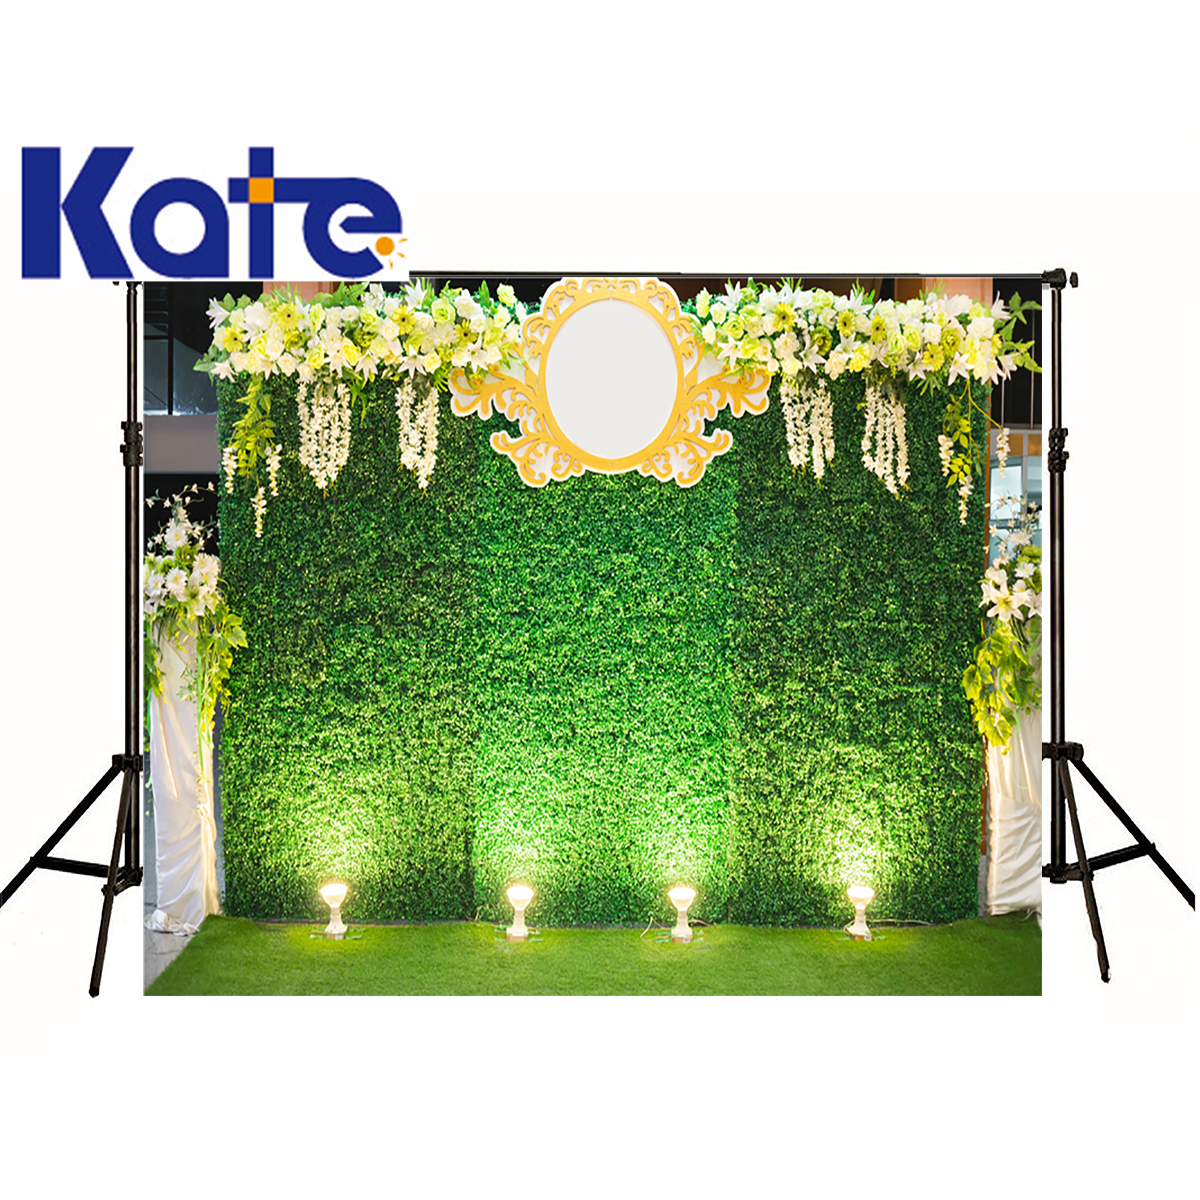 kate Wedding Photographic Background Stage Lighting Flowers Grass Green Background Plants Photocall Backdrops Kids Wedding leaves from paradise – the cult of john the evangelist at the dominican convert of paradies bei soest